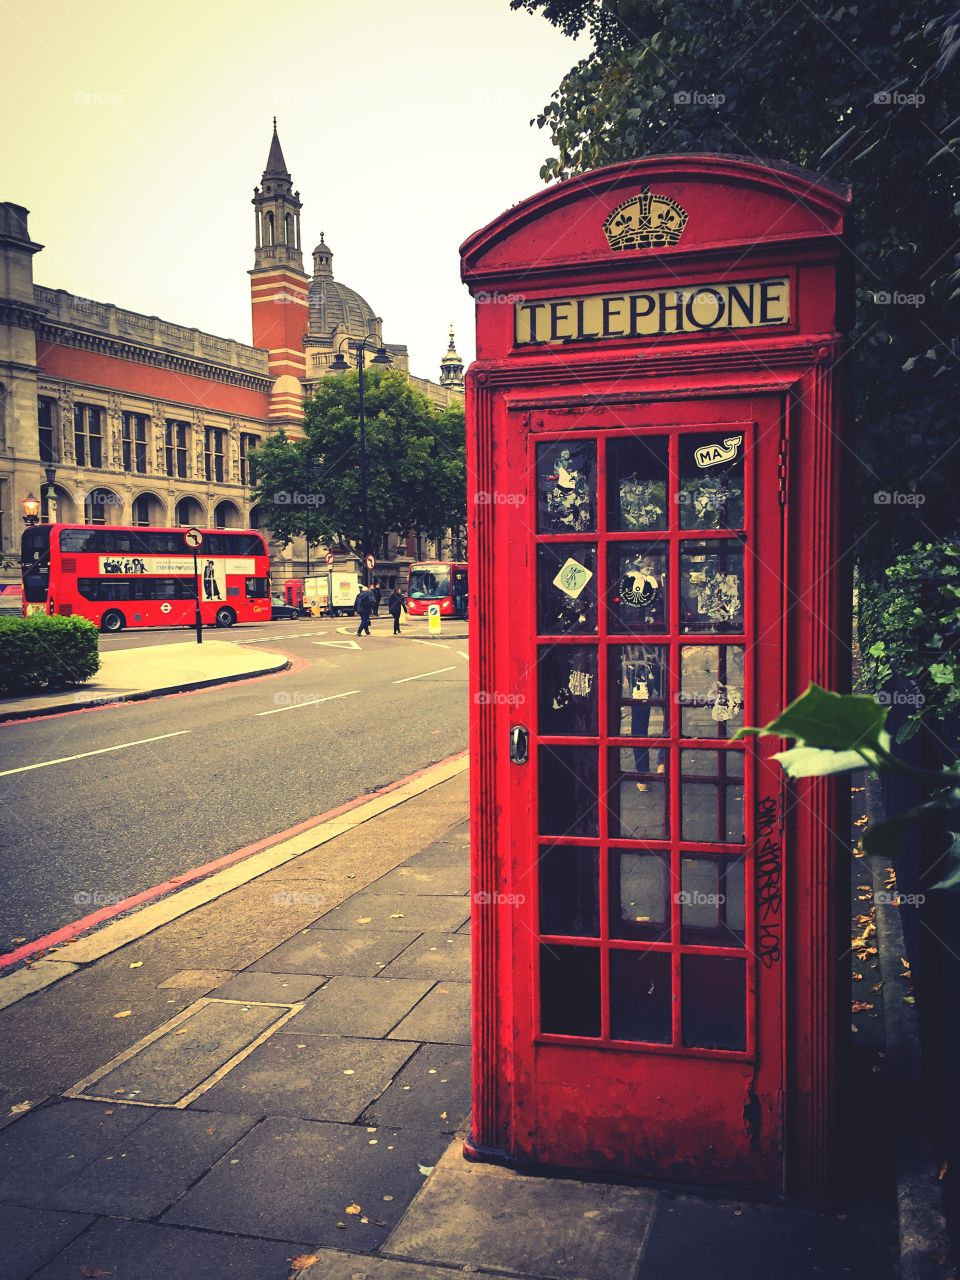 You are in London. Red telephone box and bus by the Victoria and Albert Museum, South Kensington, England.